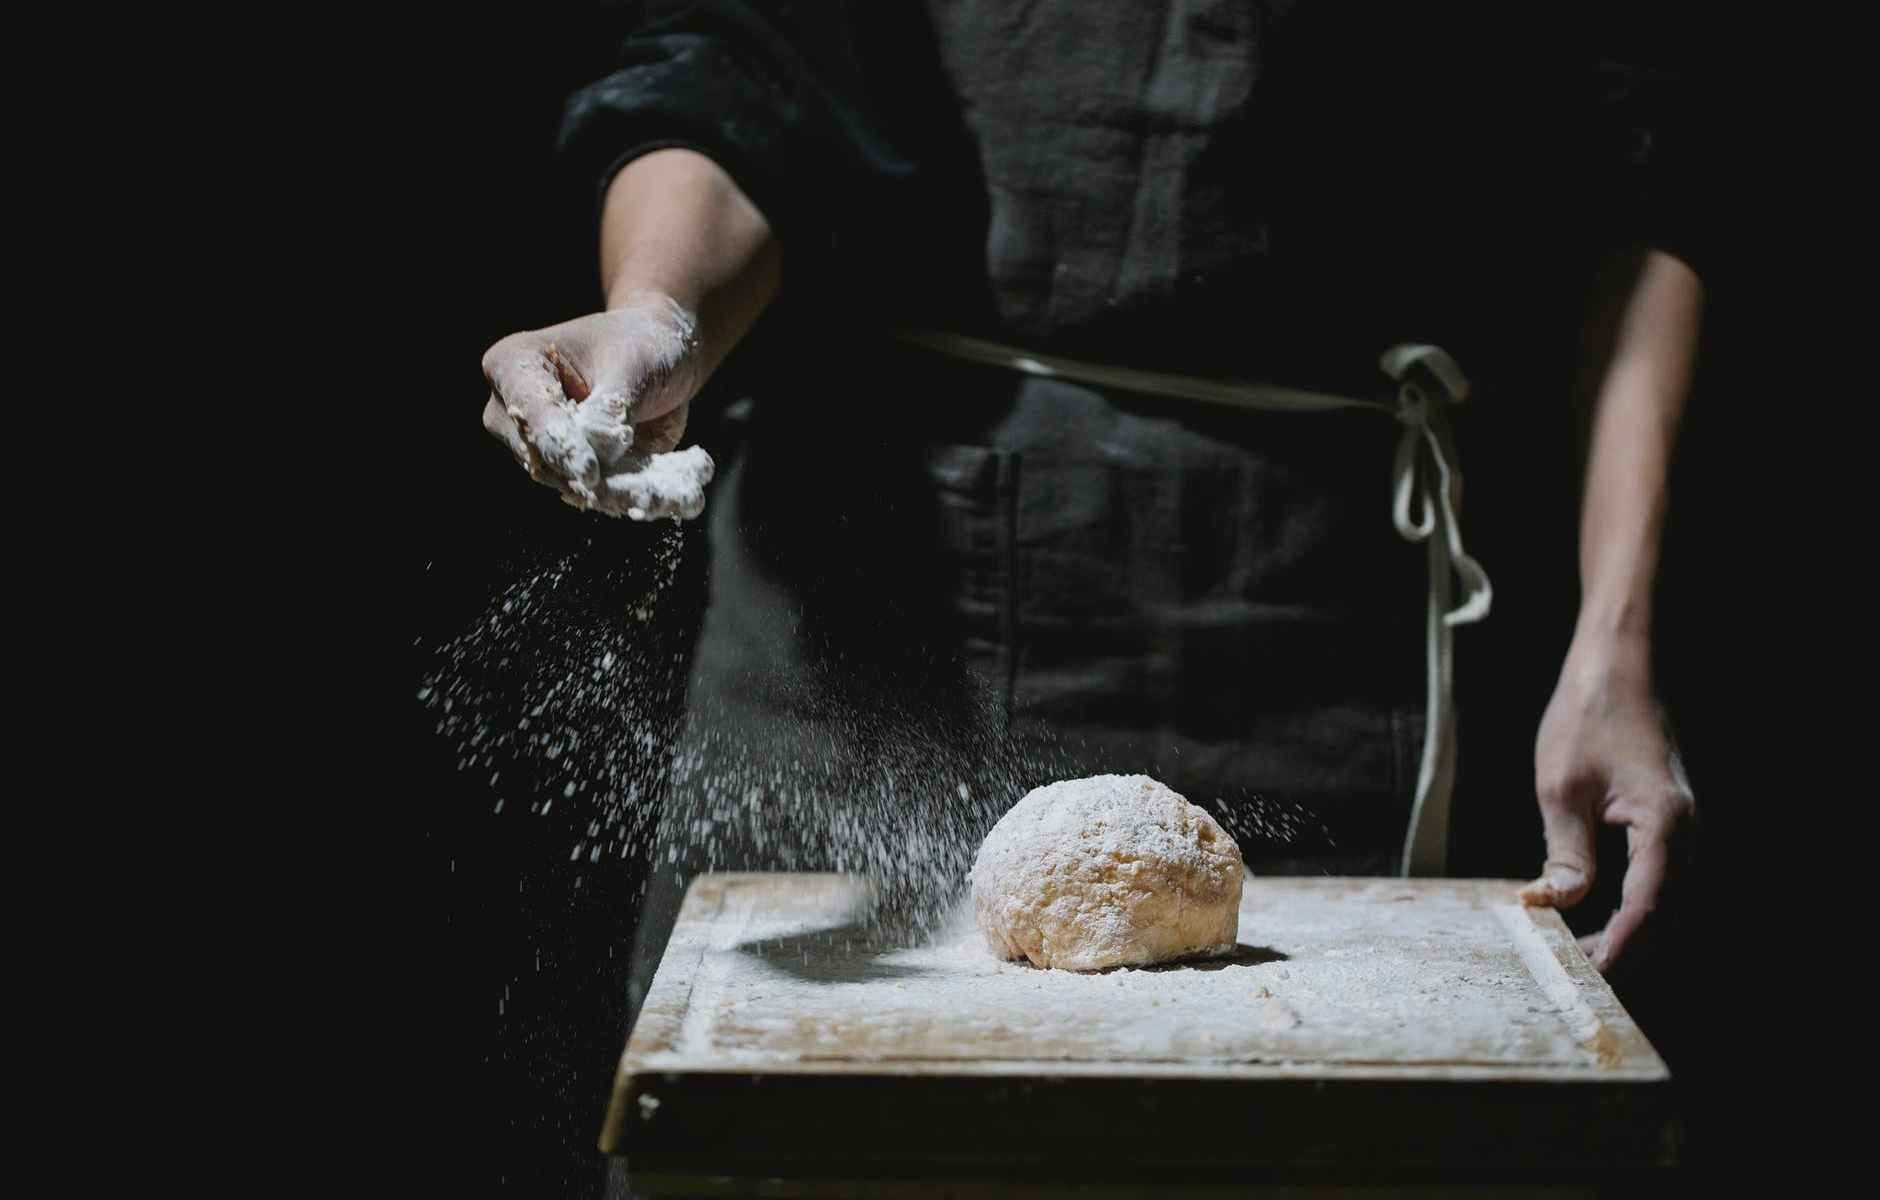 cook sprinkling flour on dough for pastry